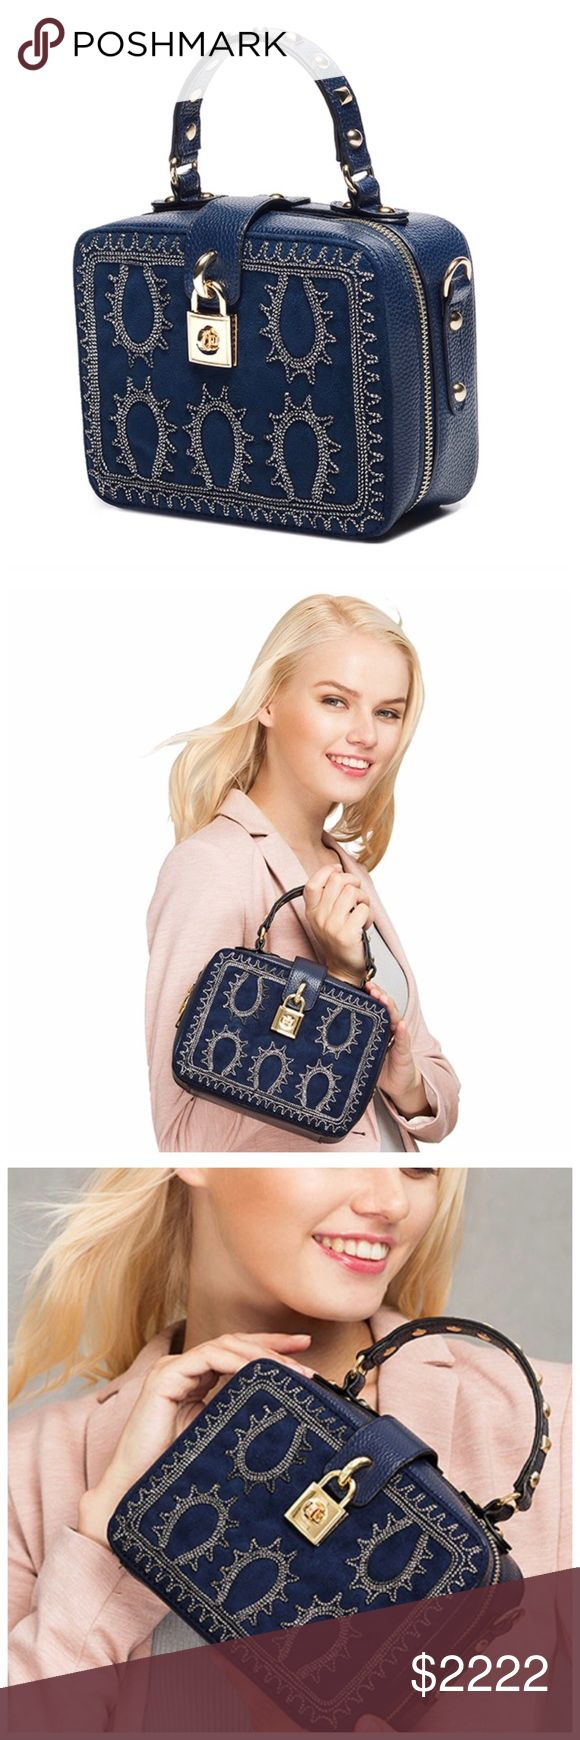 ‼️ COMING SOON Beaded Small Pill Box Handbag ‼️ ‼️PLEASE LIKE THIS LISTING TO BE NOTIFIED WHEN THEY ARRIVE‼️‼️ Bags